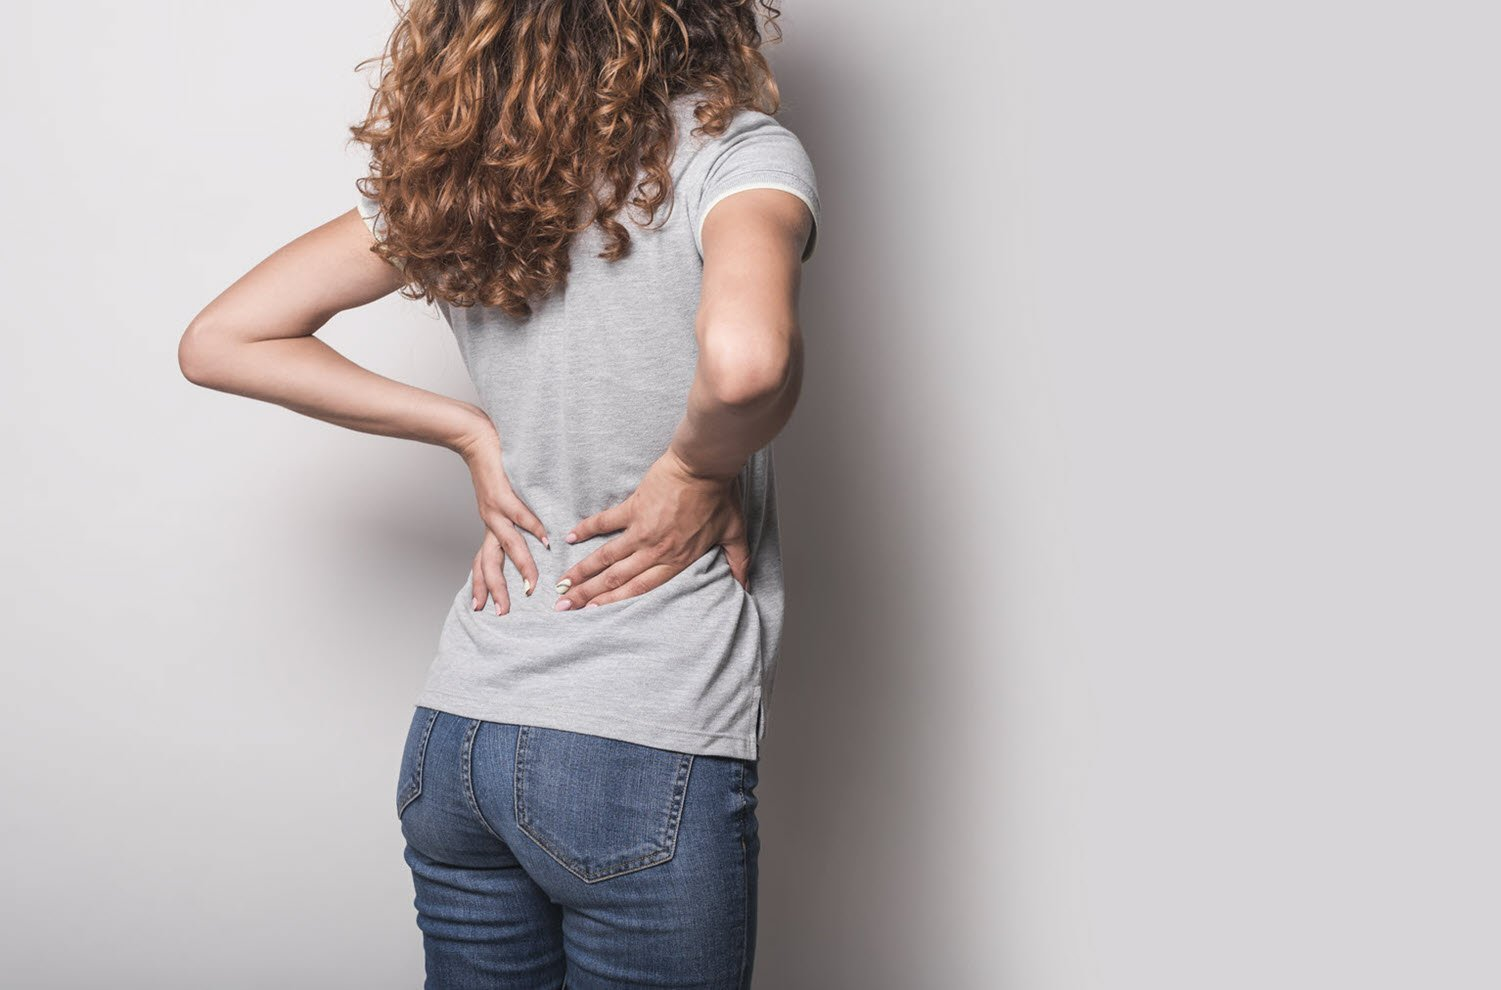 The Best Way To Prevent Morning Lower Back Pain | Cushion Lab